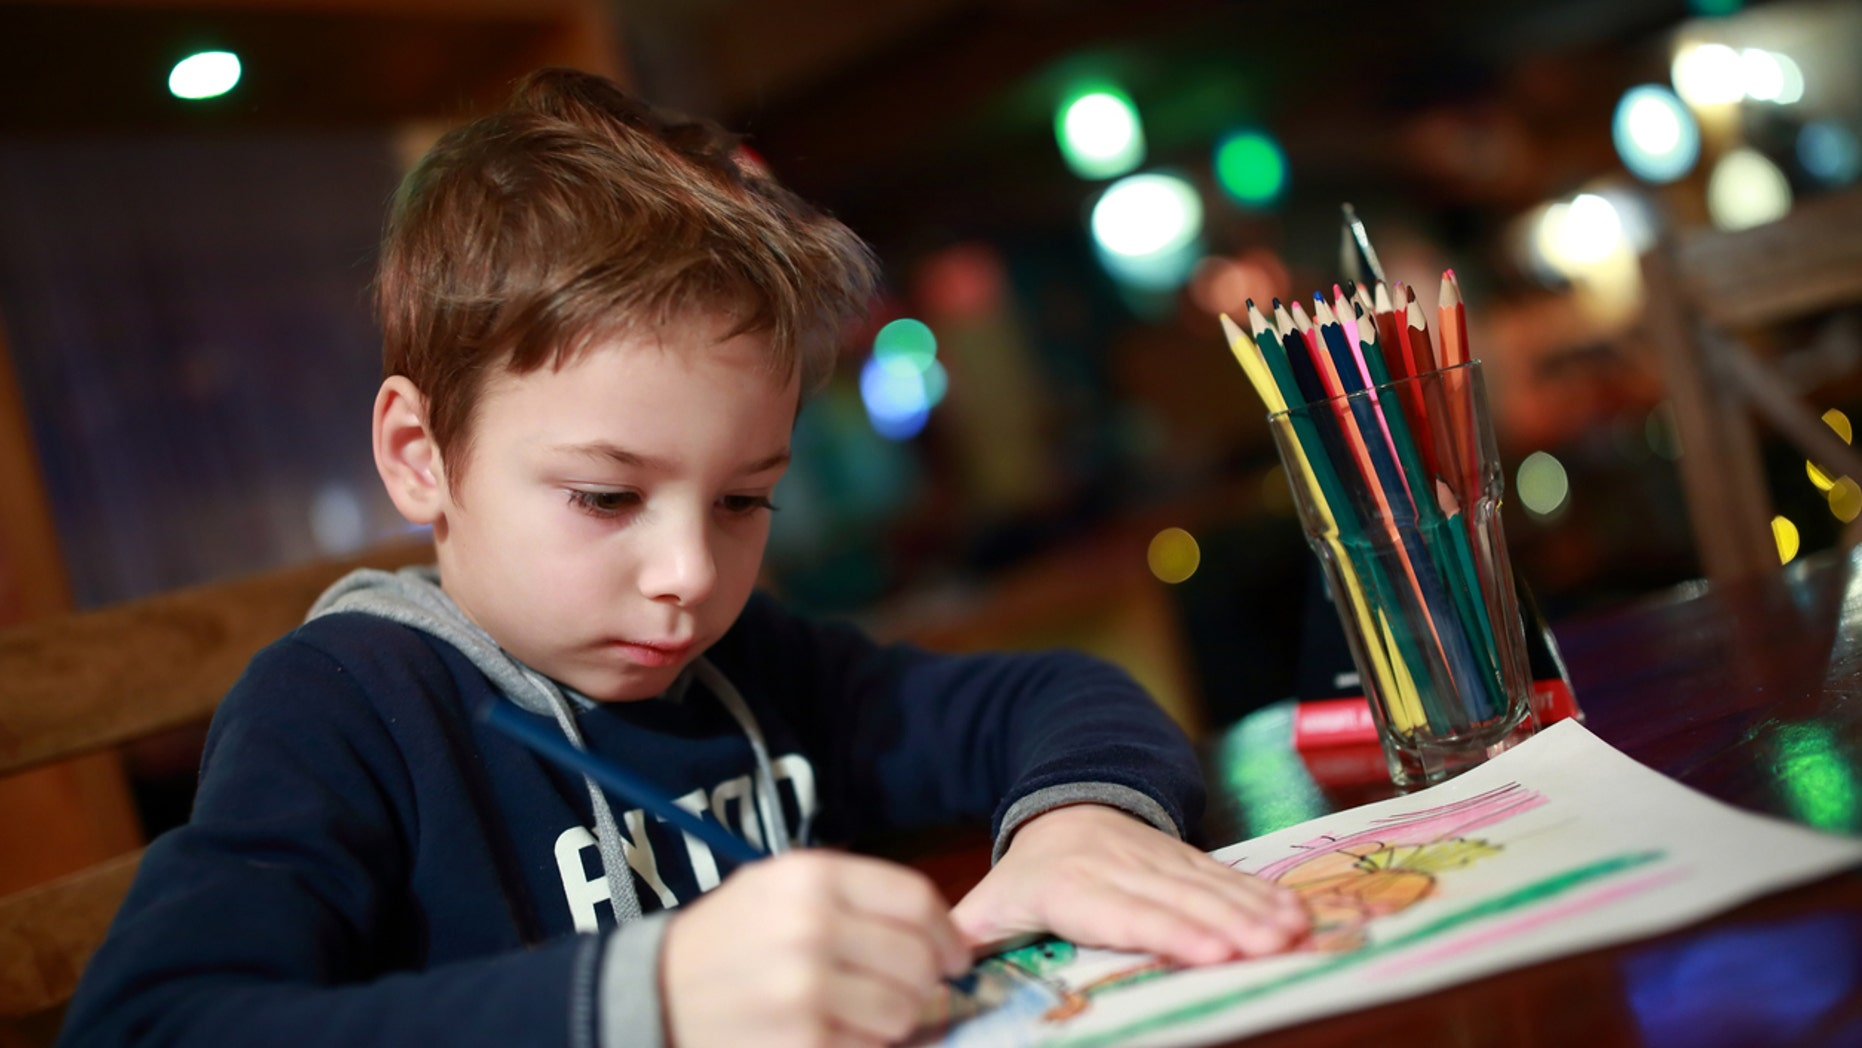 Servers and family member share their most outrageous stories of child artists.